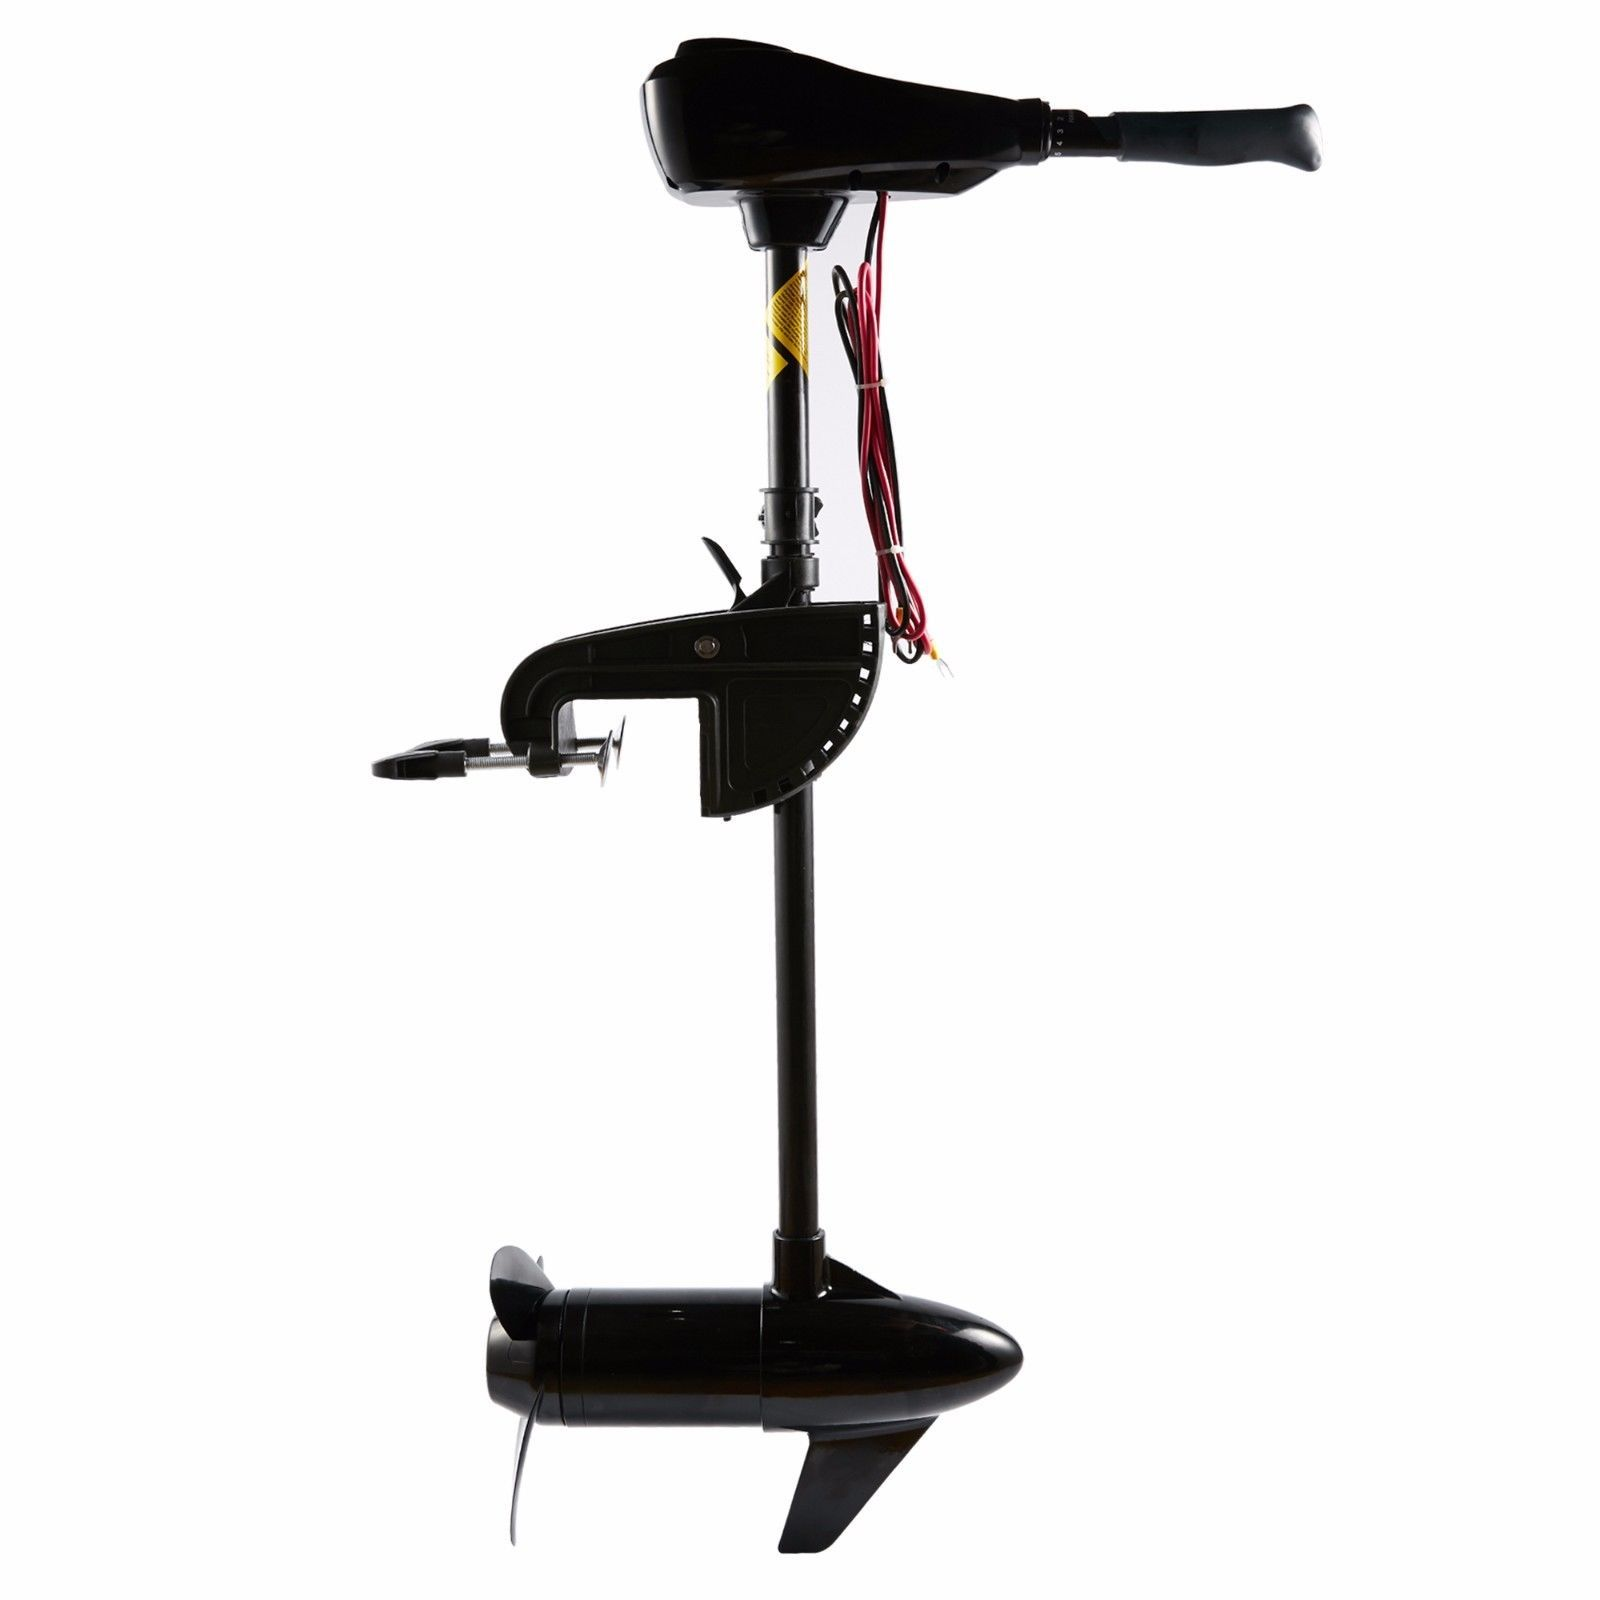 Cloud Mountain 50LBS Thrust Electric Trolling Motor for Fishing Boats